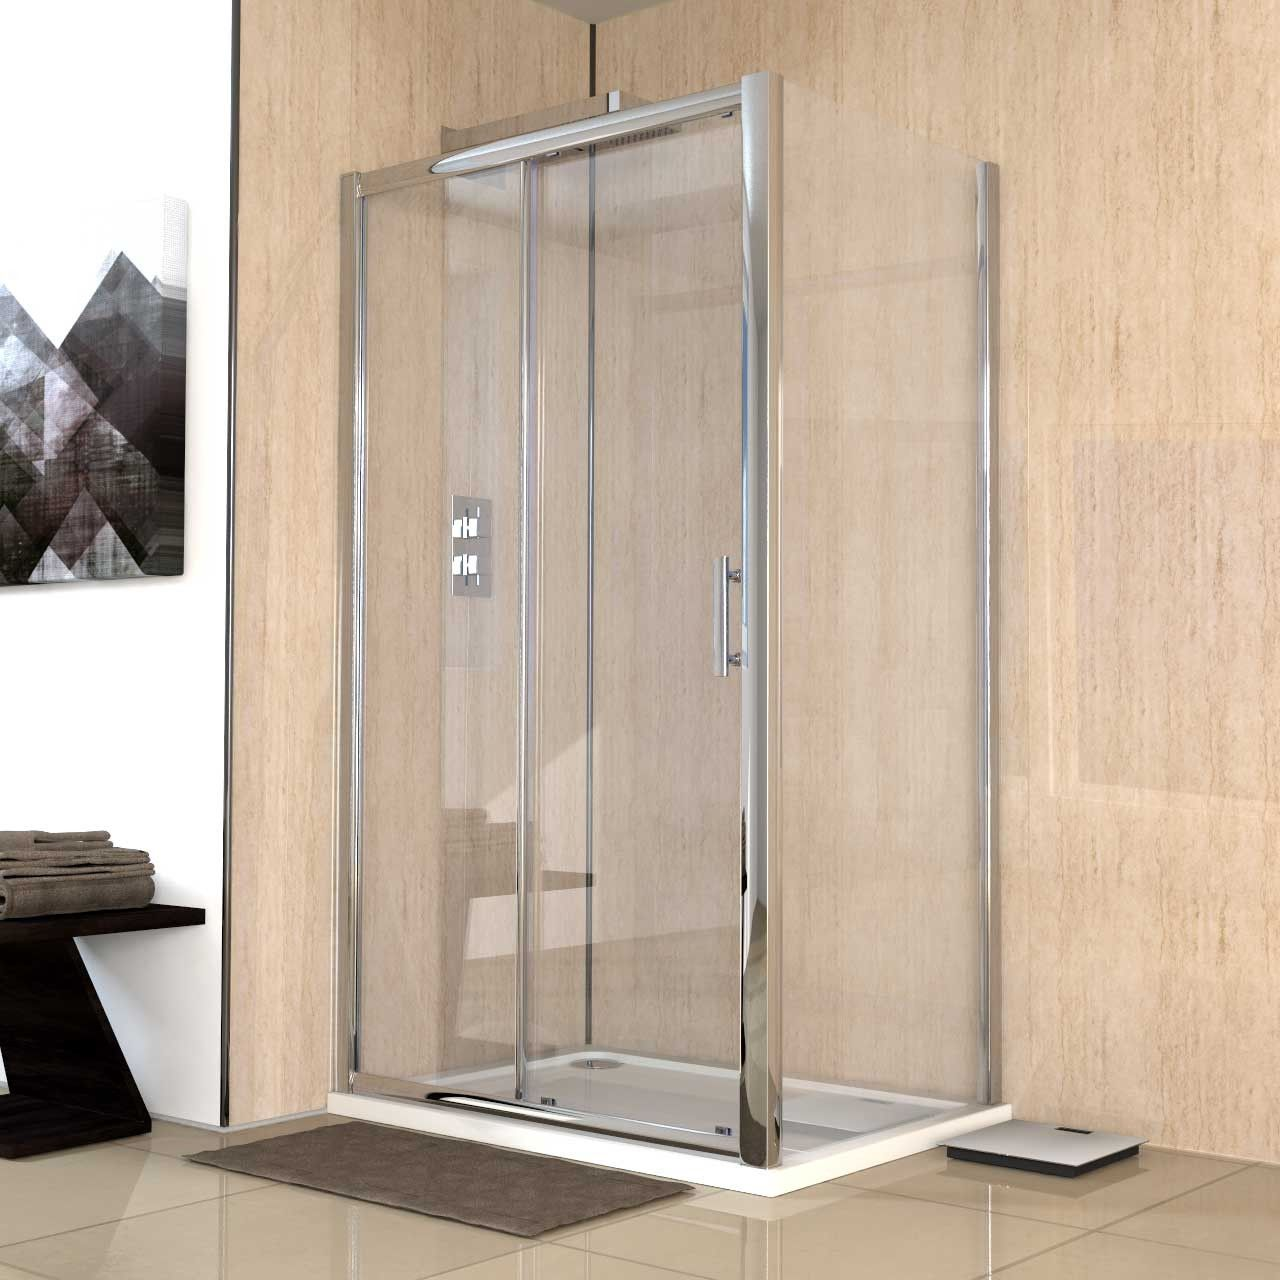 Series 6 1100mm X 800mm Sliding Door Shower Enclosure Sliding Shower Door Shower Remodel Shower Enclosure